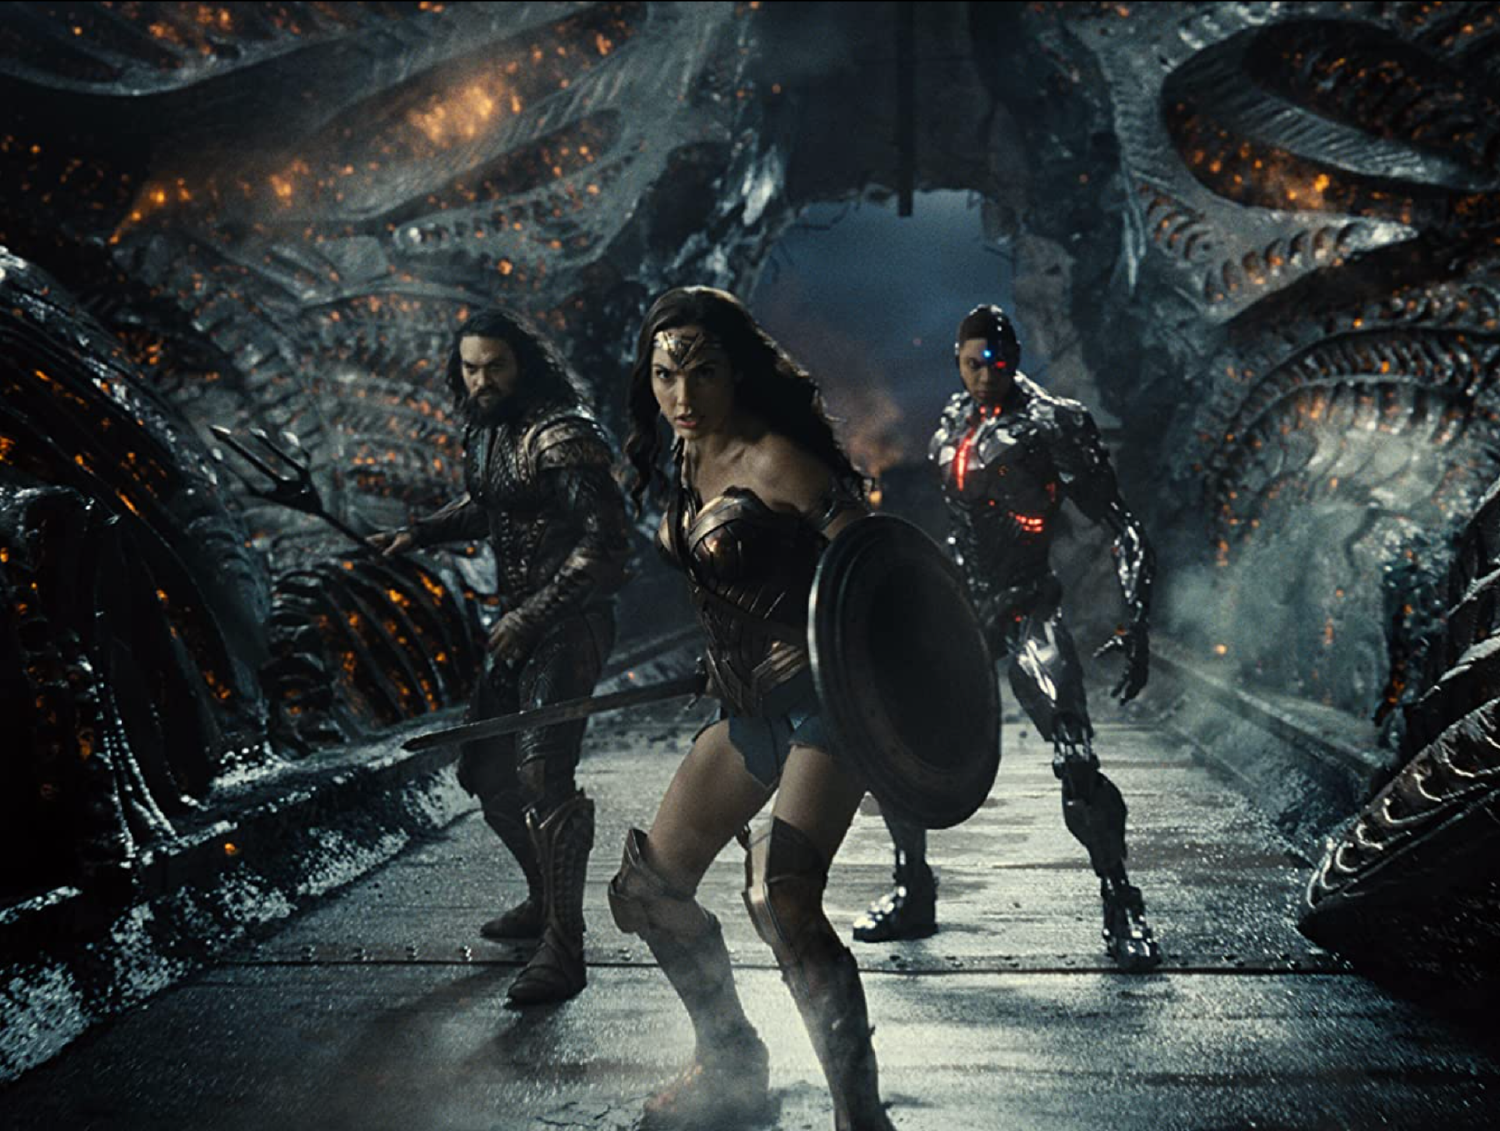 The Snyder Cut: What Does it Mean for Cinema?